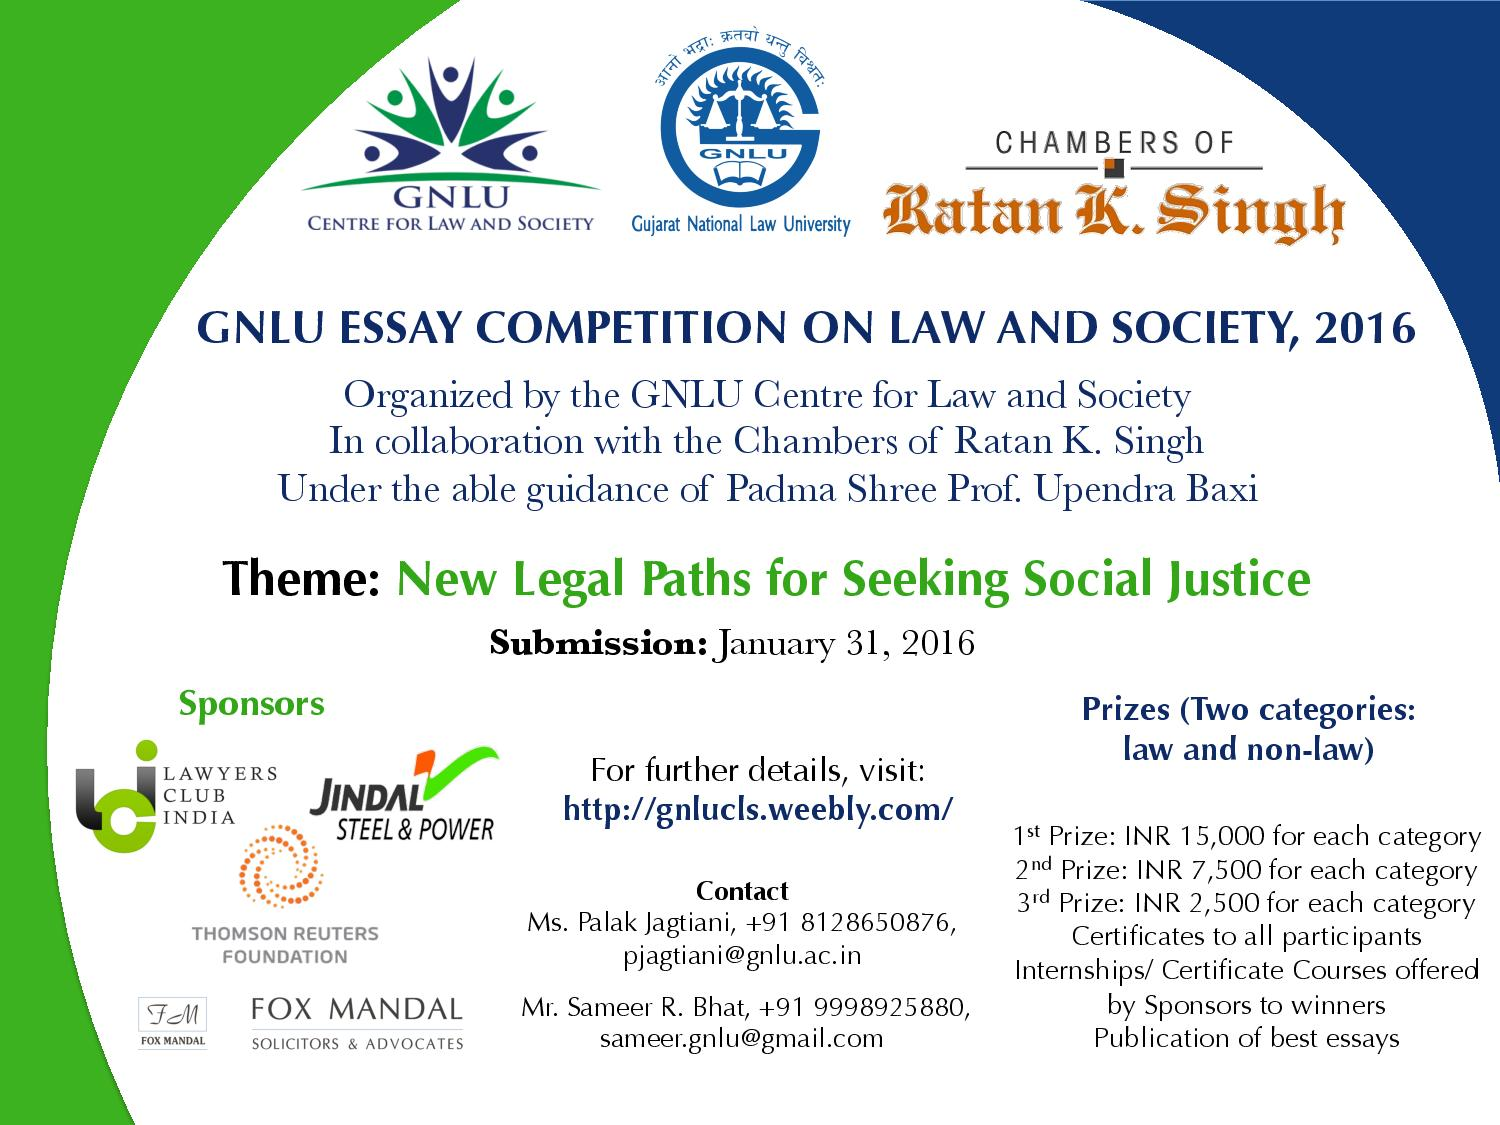 essay about competition tata building school online essay  essay competition on law and society for further details click here gnlu essay competition